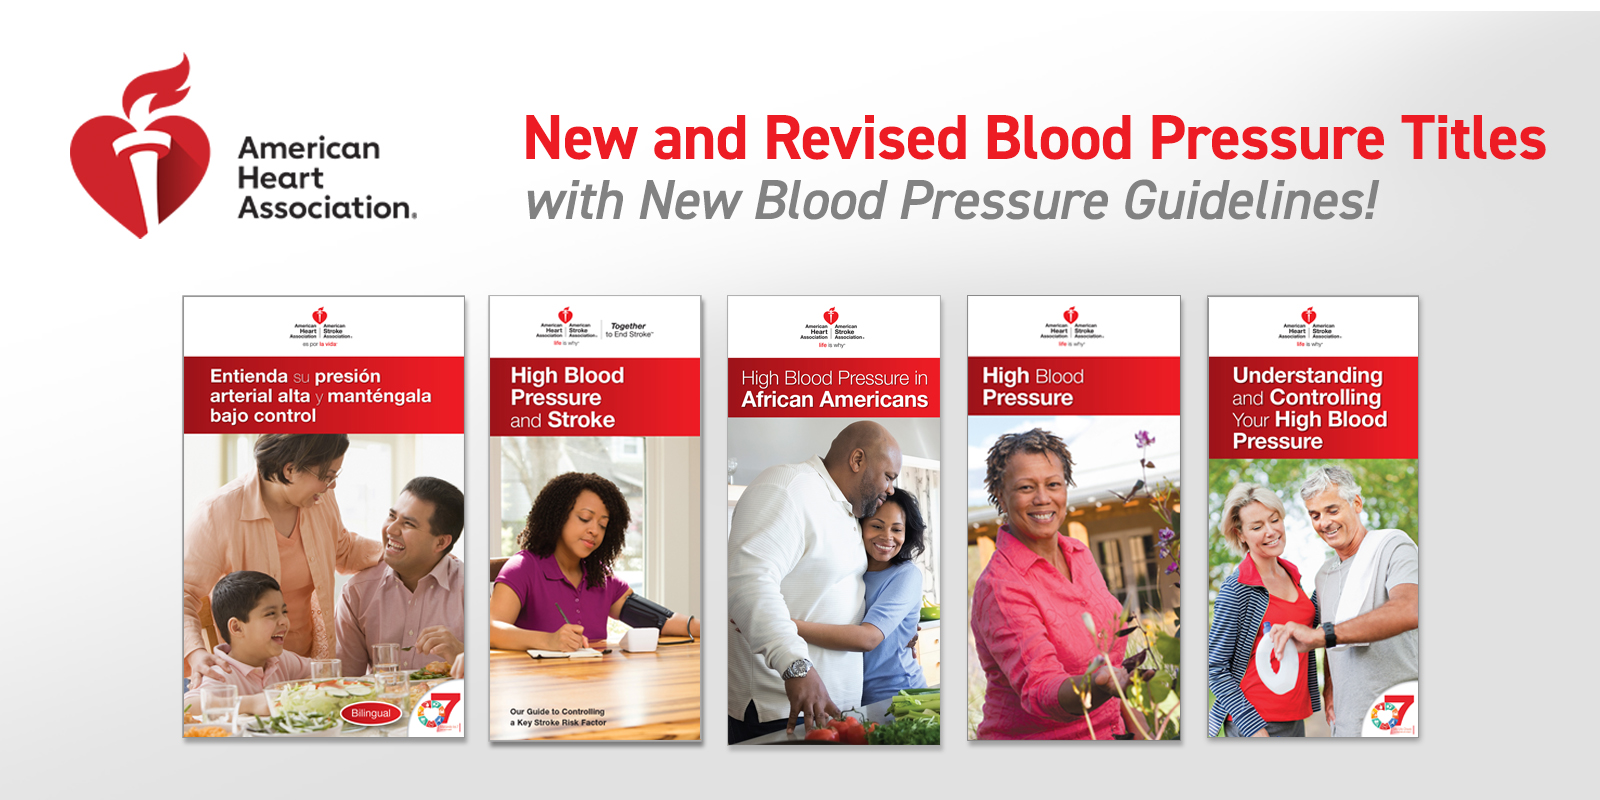 New and Revised Blood Pressure Titles